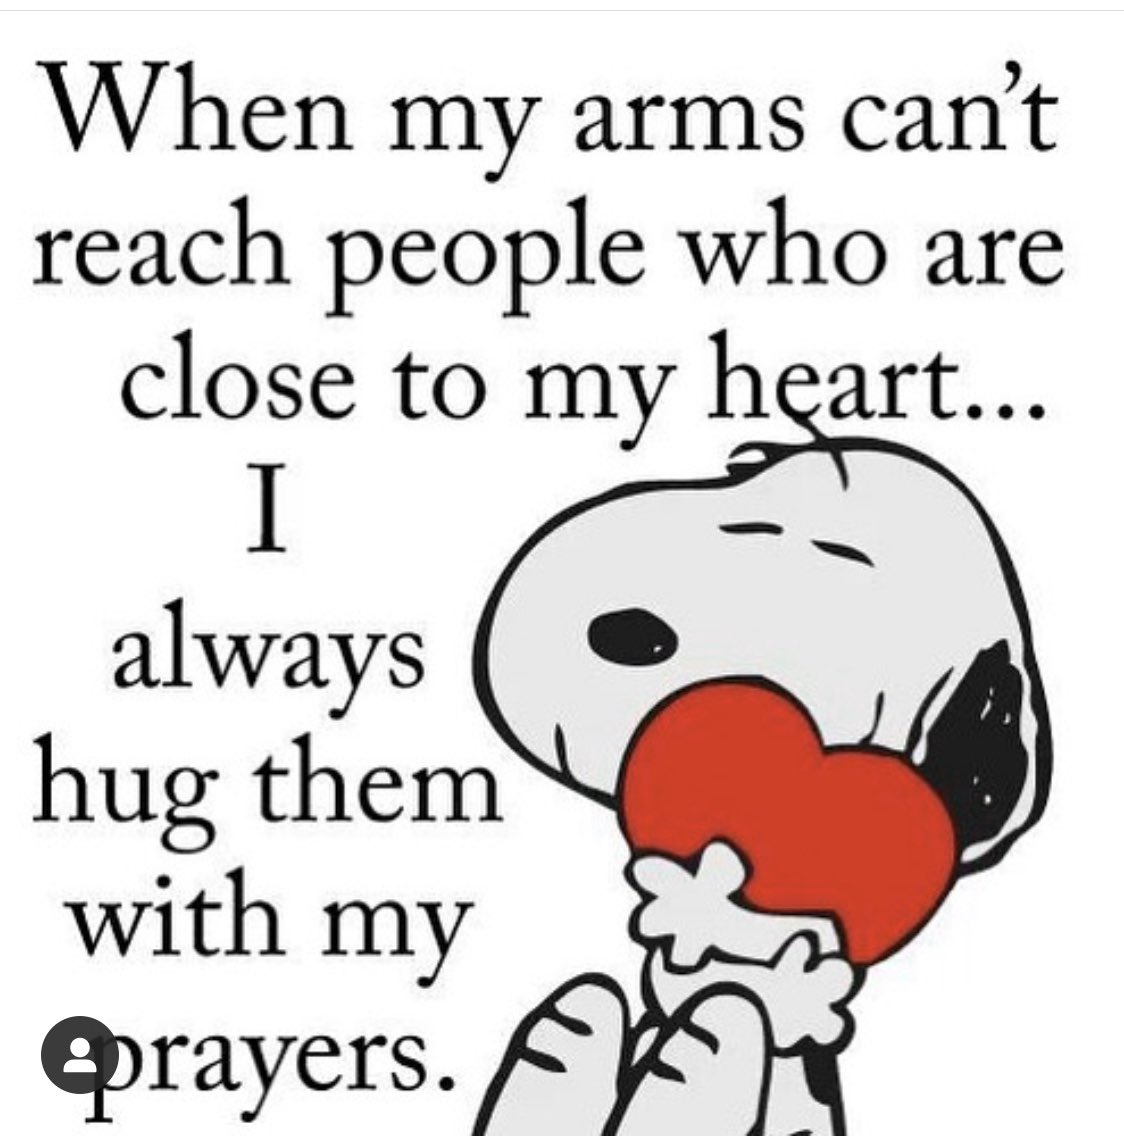 When my arms can't reach people who are close to my heart ❤️ I always hug them with my prayers